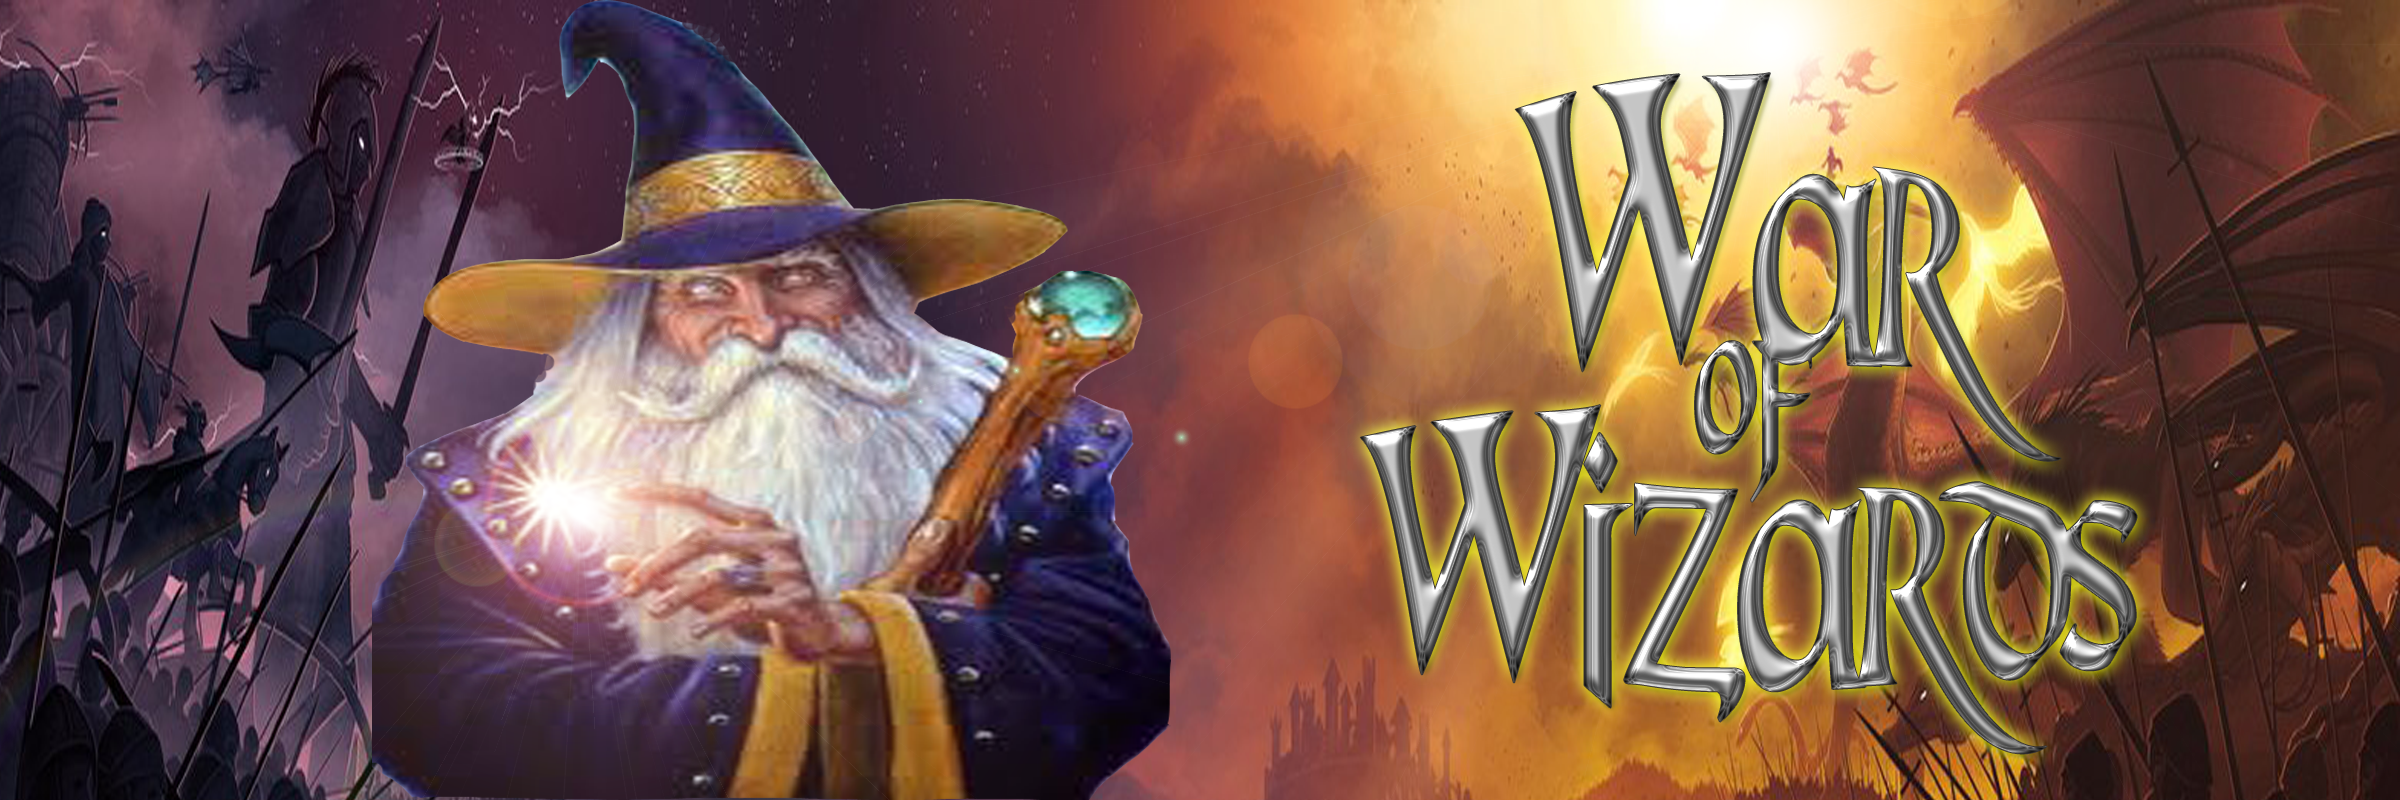 Banner Ad Design by Lara Puno - Entry No. 35 in the Banner Ad Design Contest Banner Ad Design - War of Wizards (fantasy game).